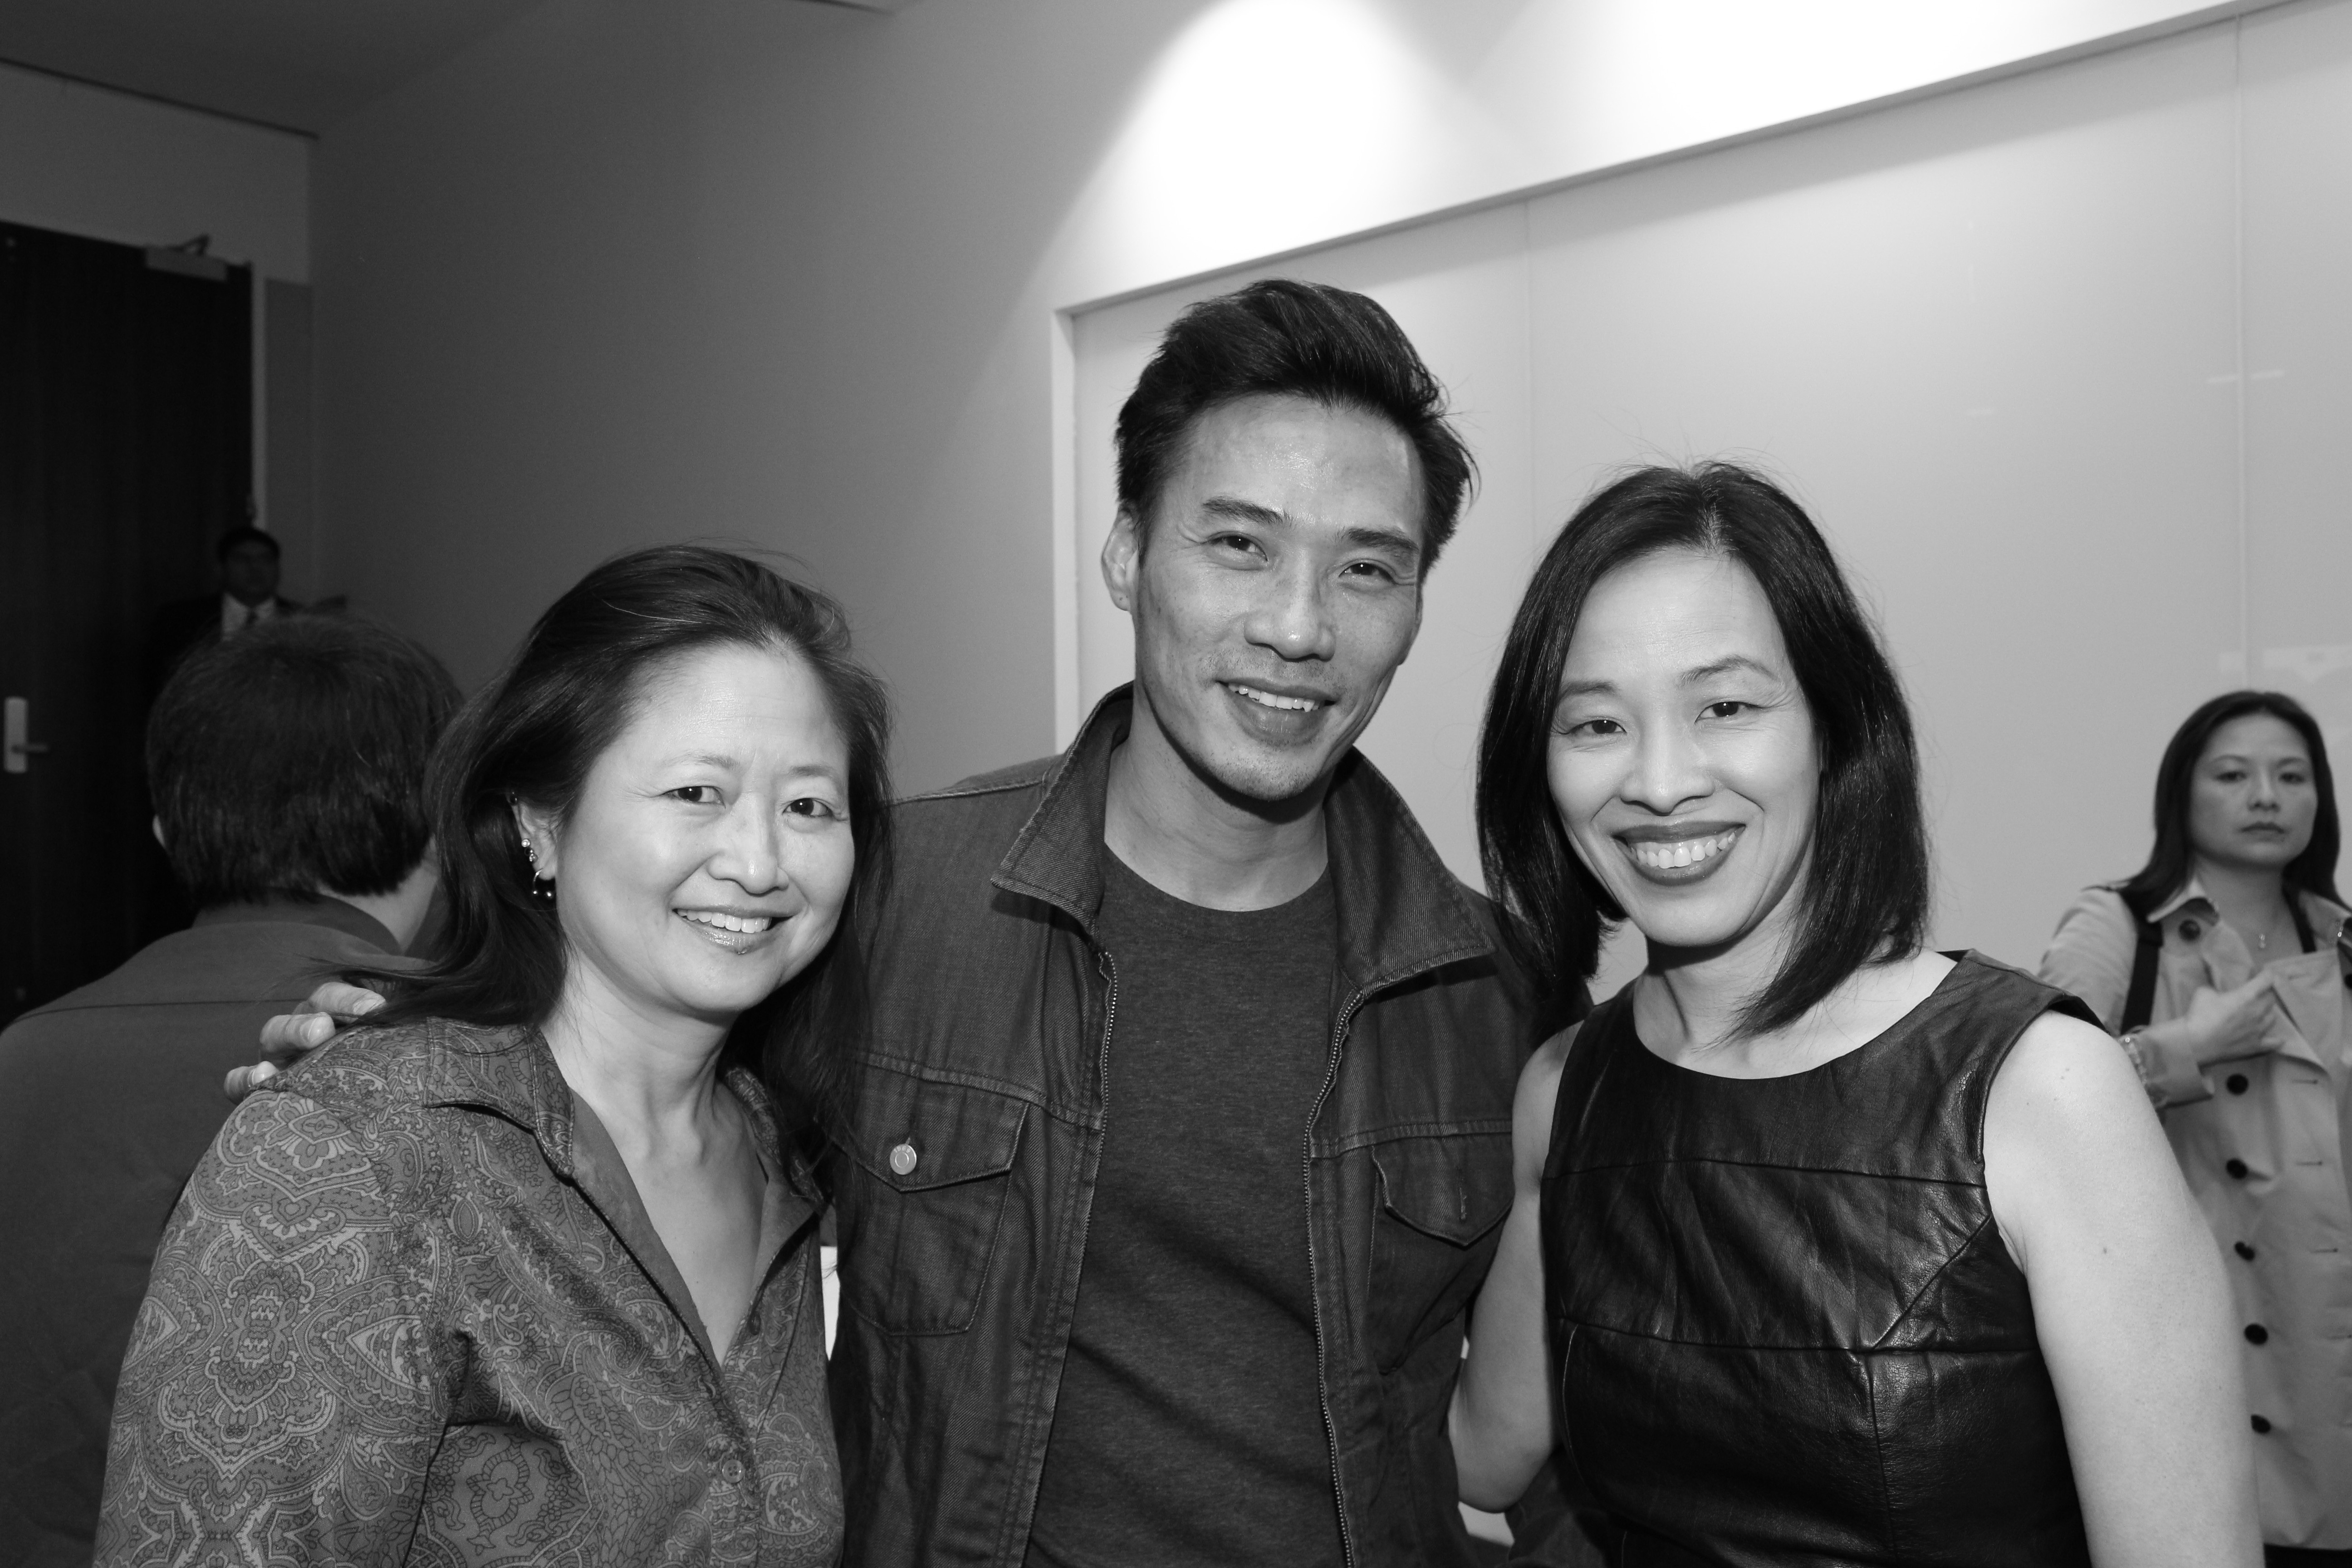 72 Hour Shootout winners Toy Lei (BOXER), Grant Chang (FINDING YOU) and Lia Chang (HIDE AND SEEK) attend a special screening of 72 Hour Shootout films at the Time Warner Theater in New York on October 7, 2015. Photo by GK